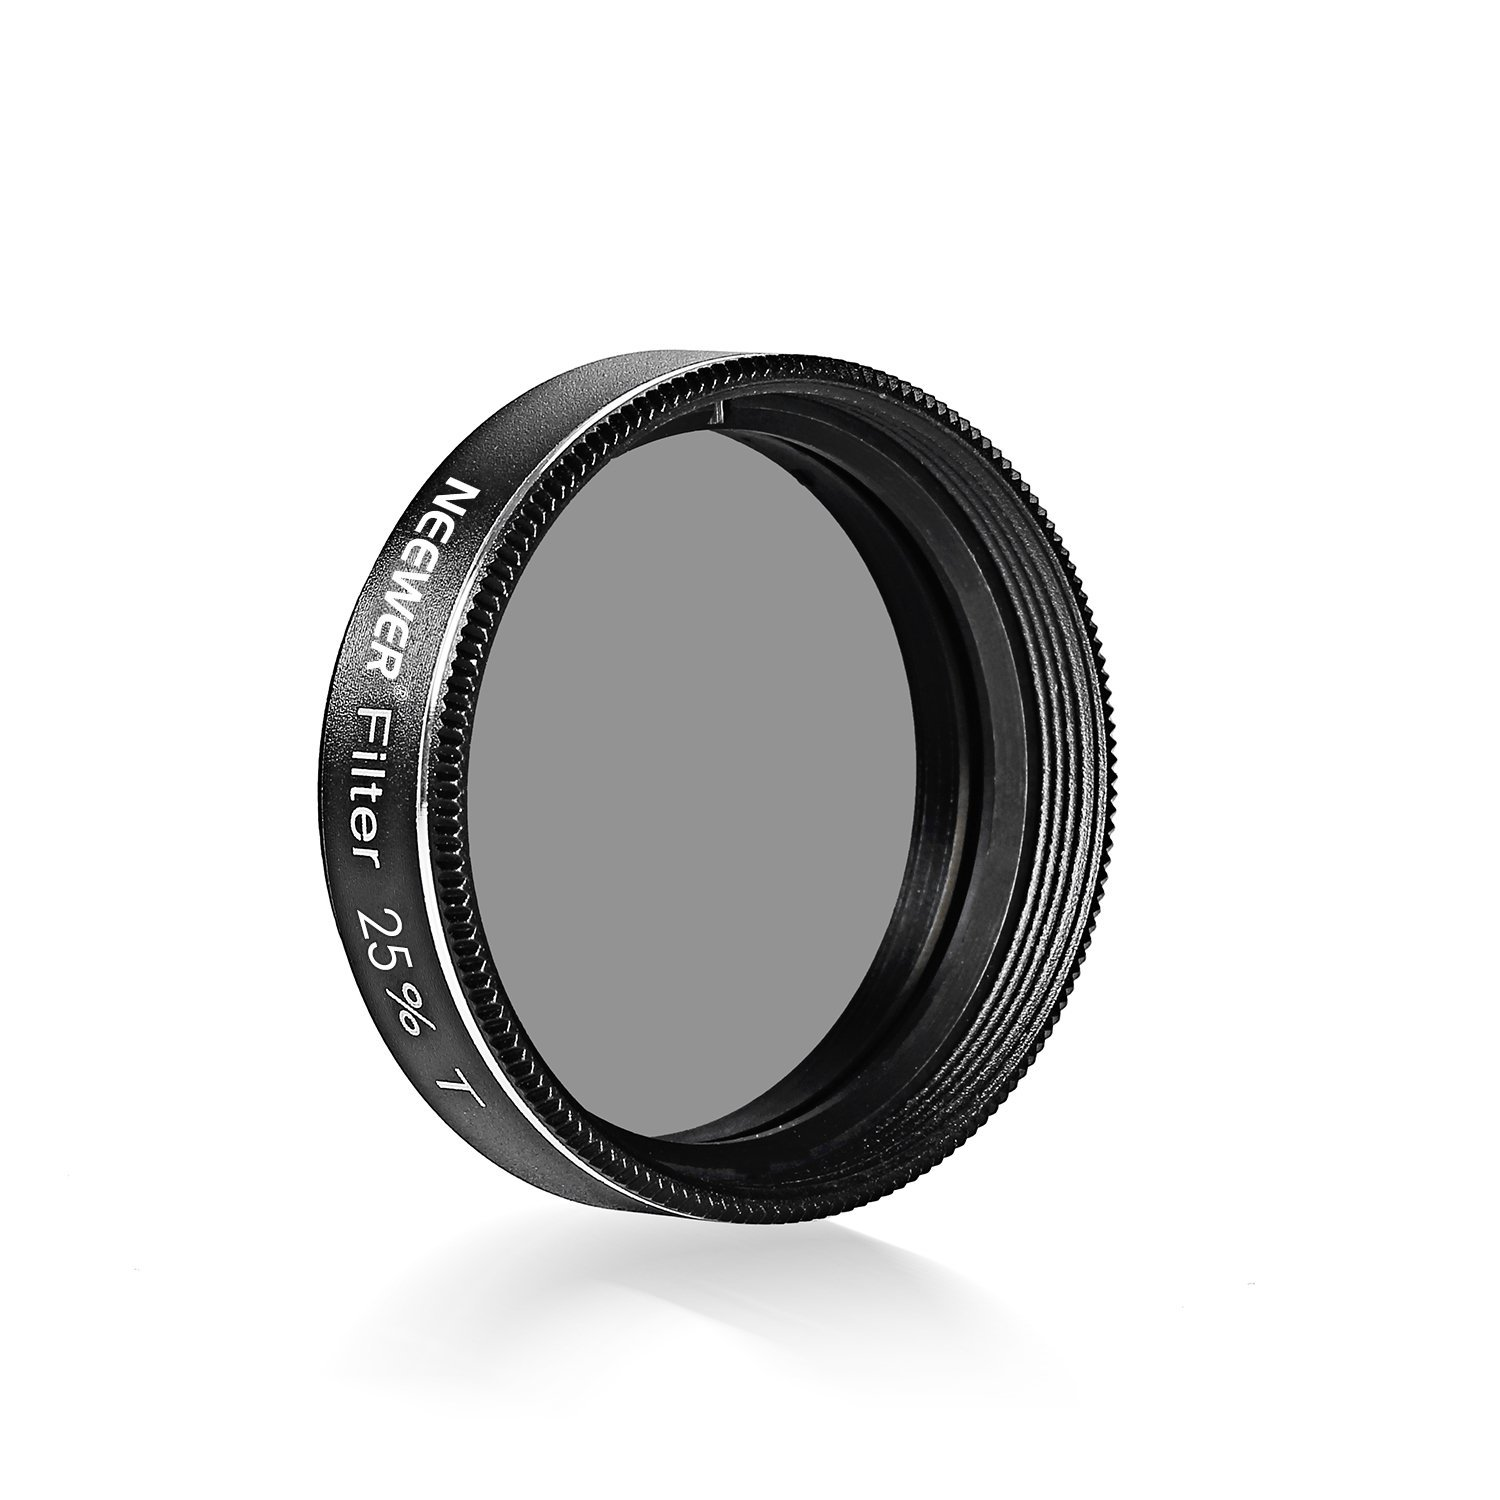 Neewer 1.25 inches 25 Percent Transmission Neutral Density Moon Filter, Aluminum Frame Metal Thread Optical Glass Telescope Eyepiece Filter Helping Reduce Overall Brightness and Irradiation (Black) by Neewer